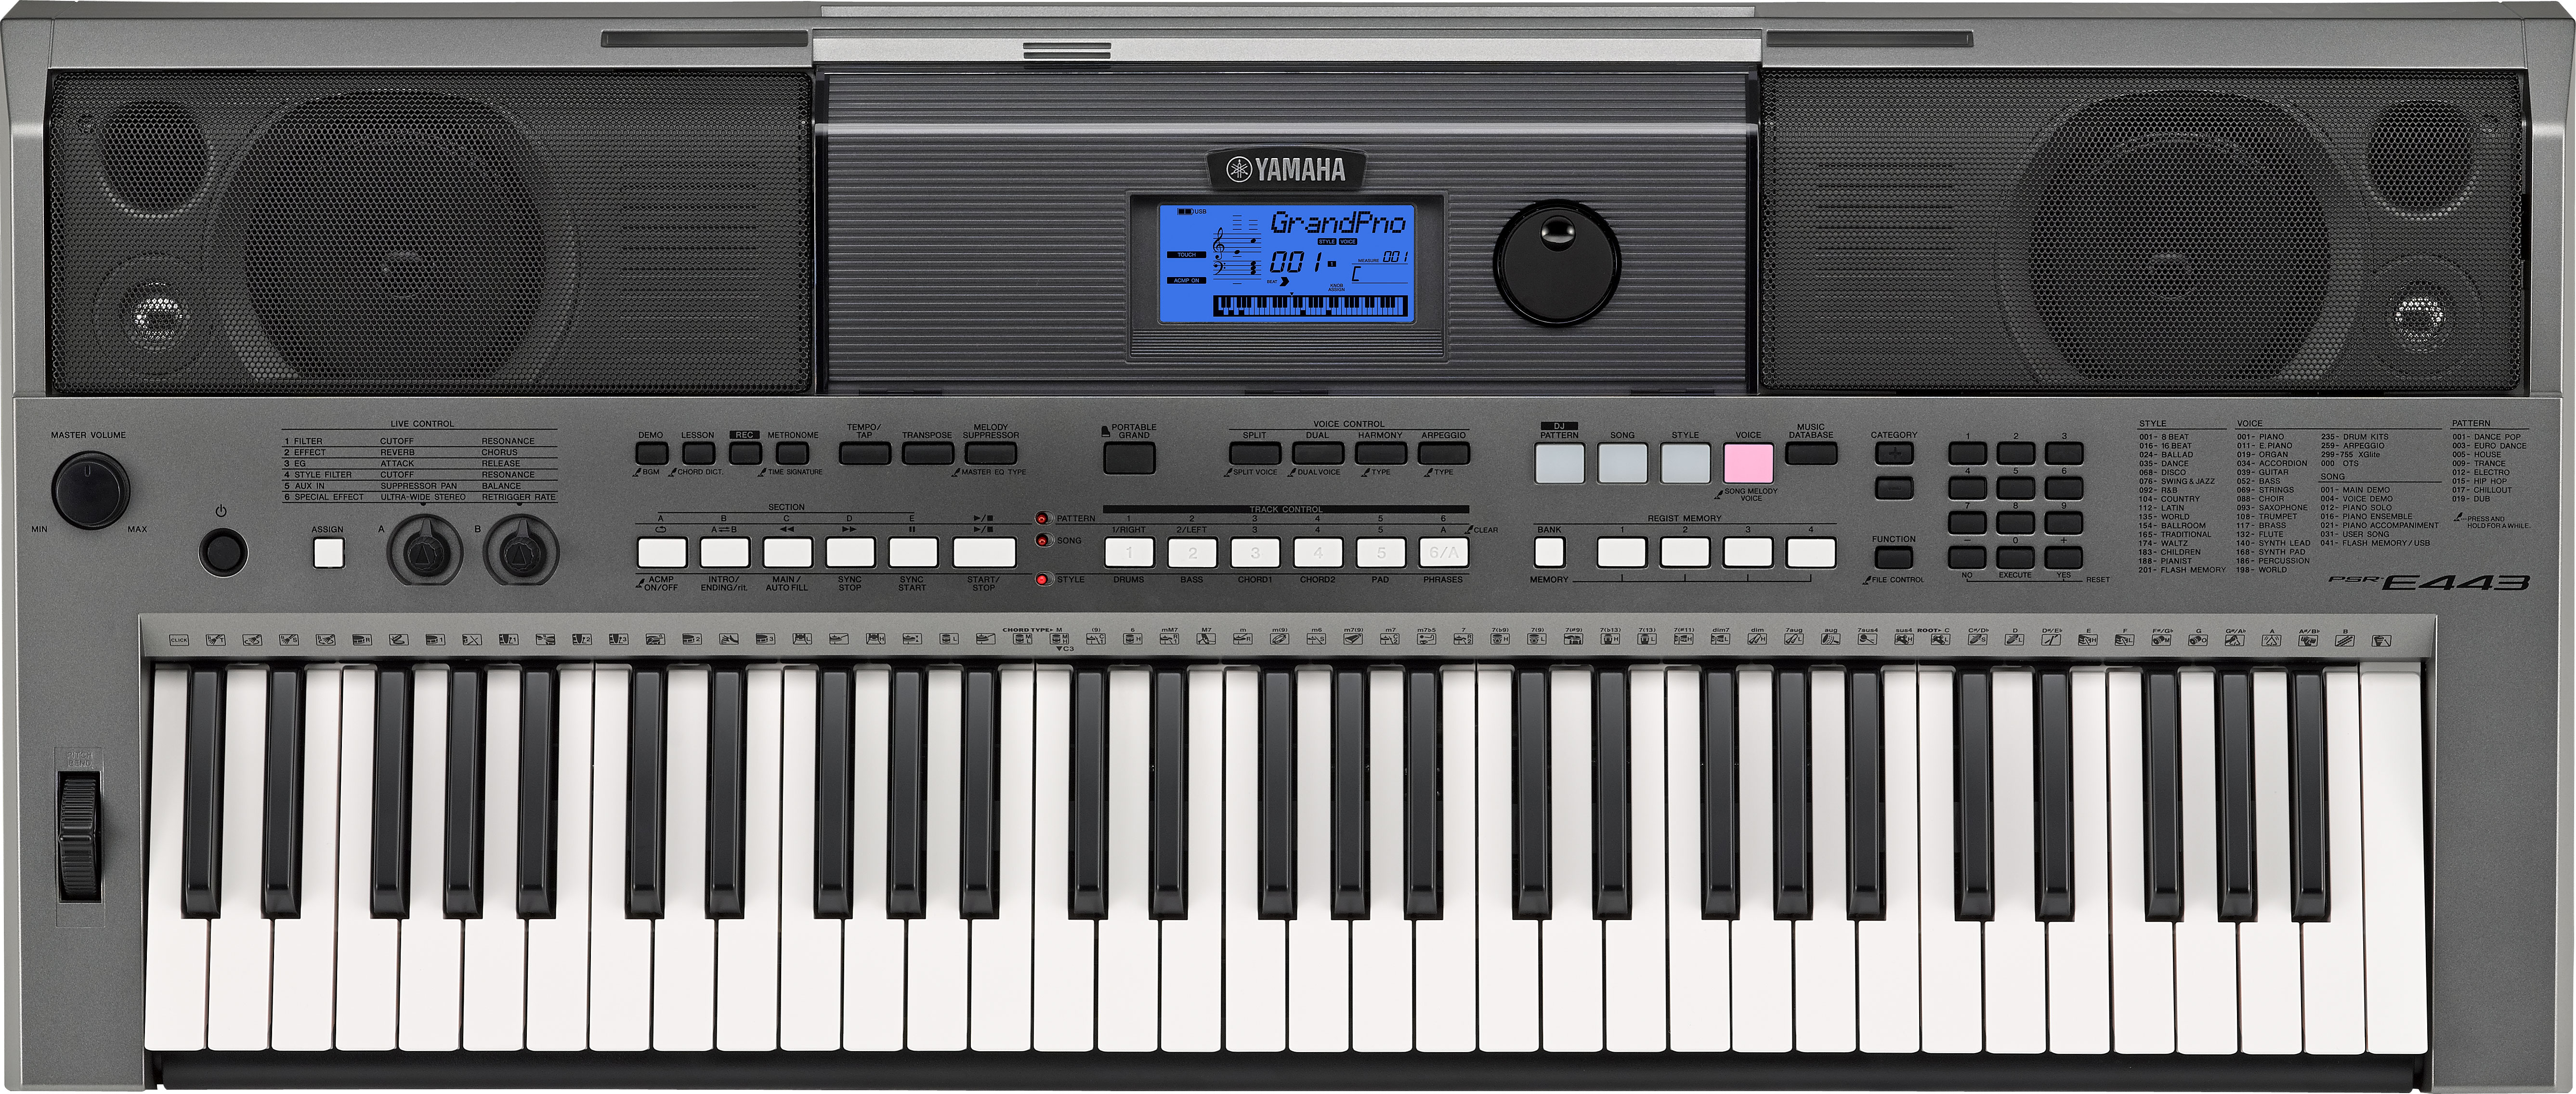 Yamaha psr e443 portable keyboard now shipping offers fun for Yamaha learning keyboard